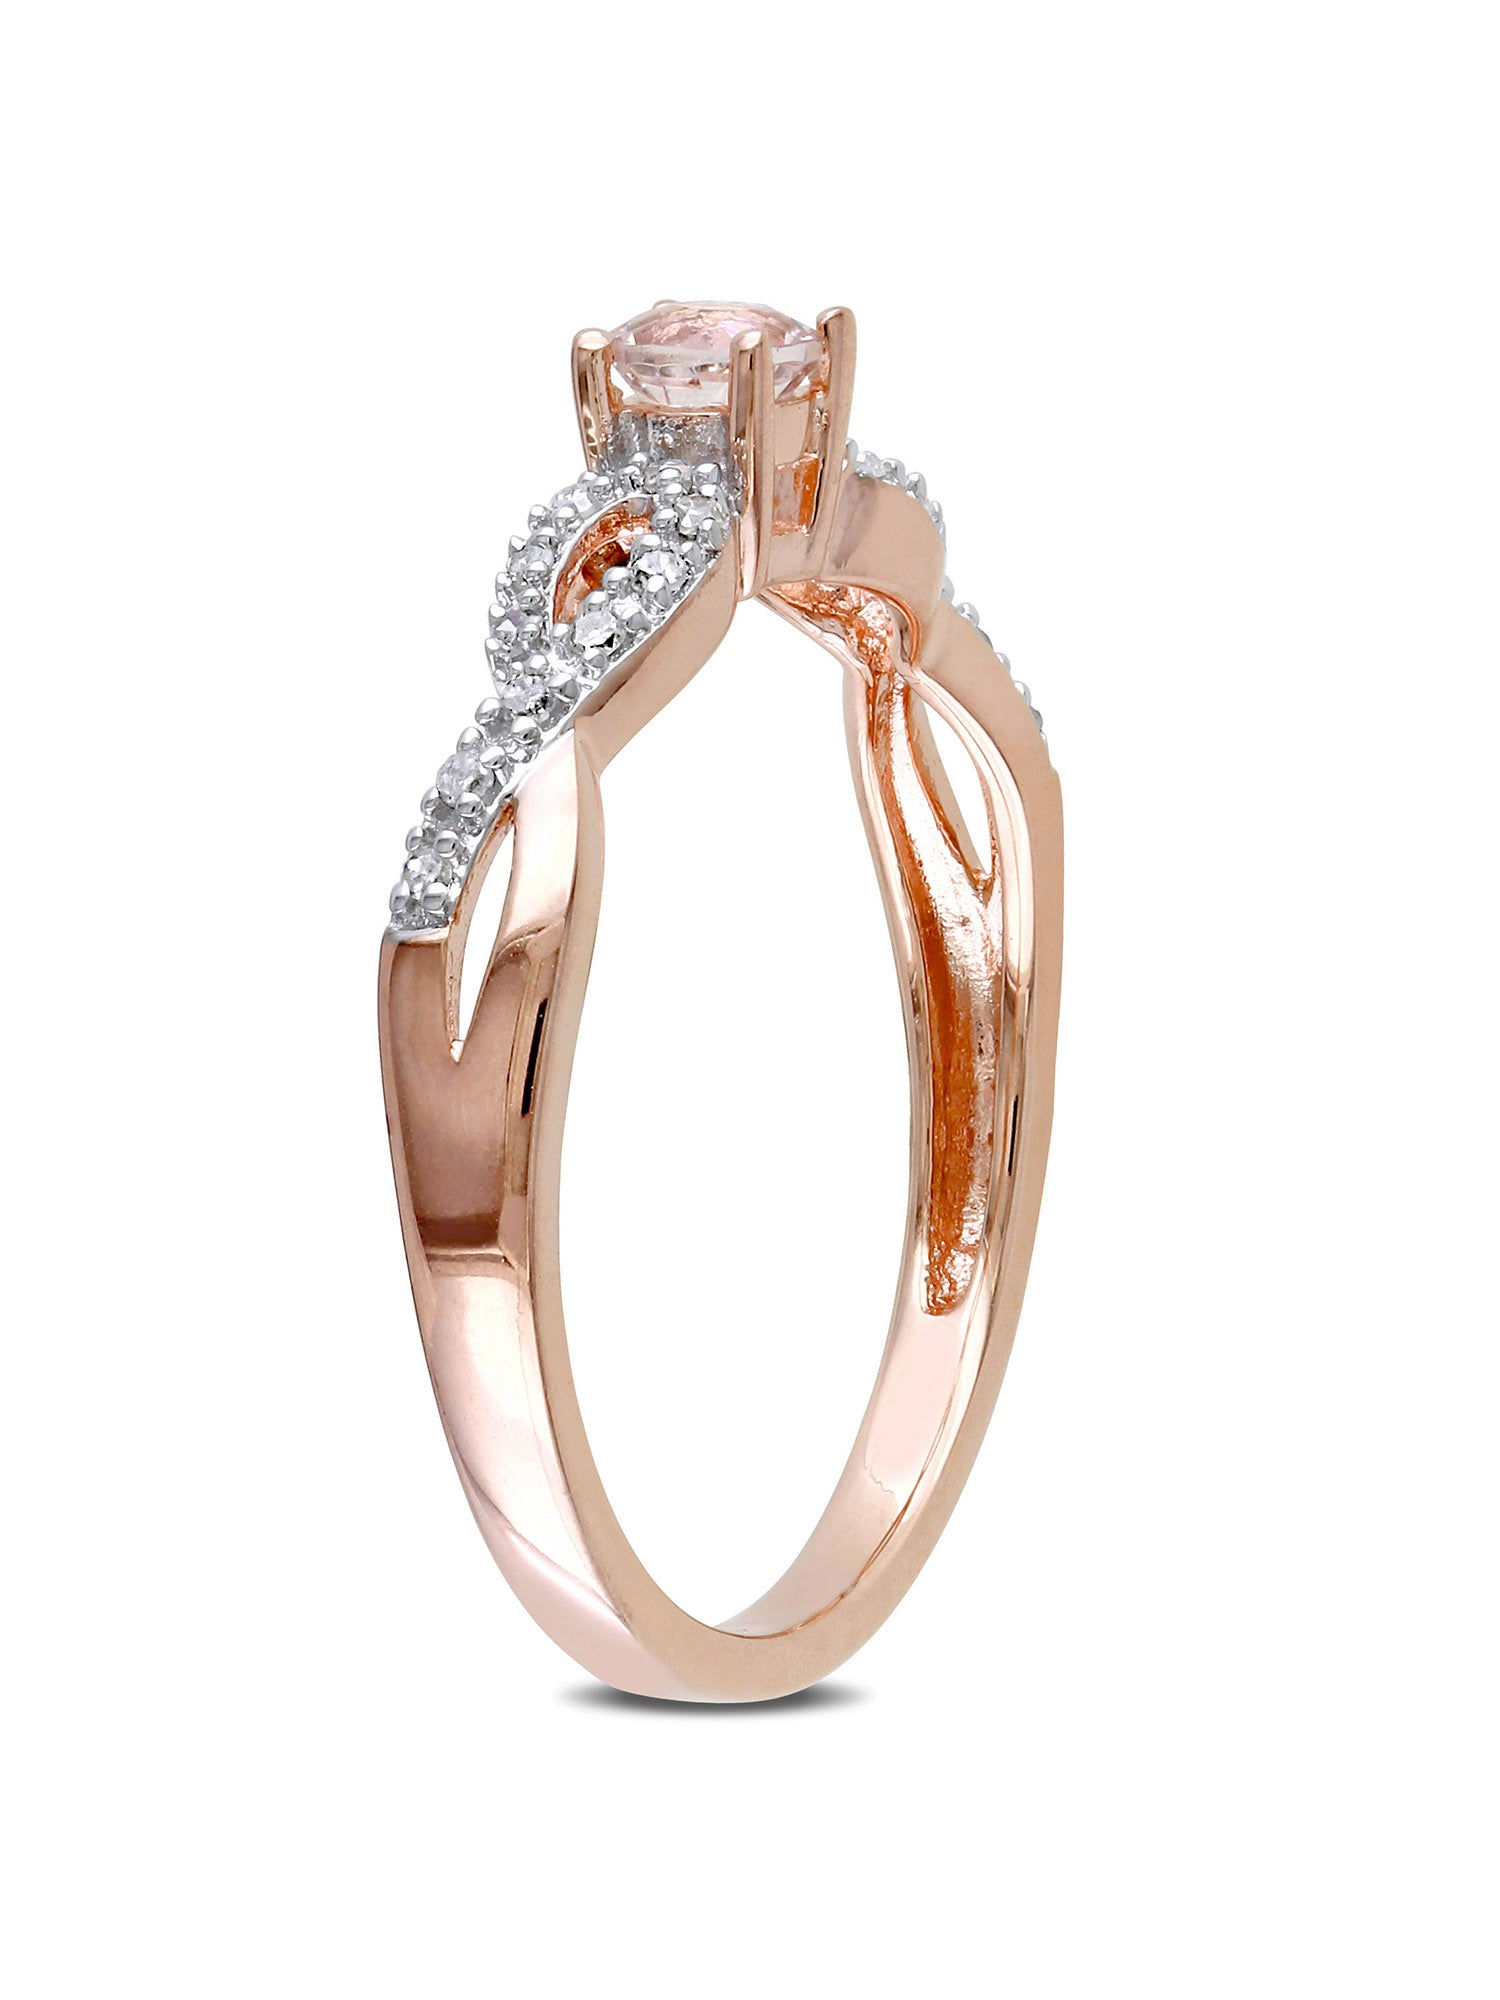 1/6 CARAT MORGANITE AND DIAMOND ROSE-PLATED STERLING SILVER RING picktookshop.myshopify.com [gogle] [sale] [online]